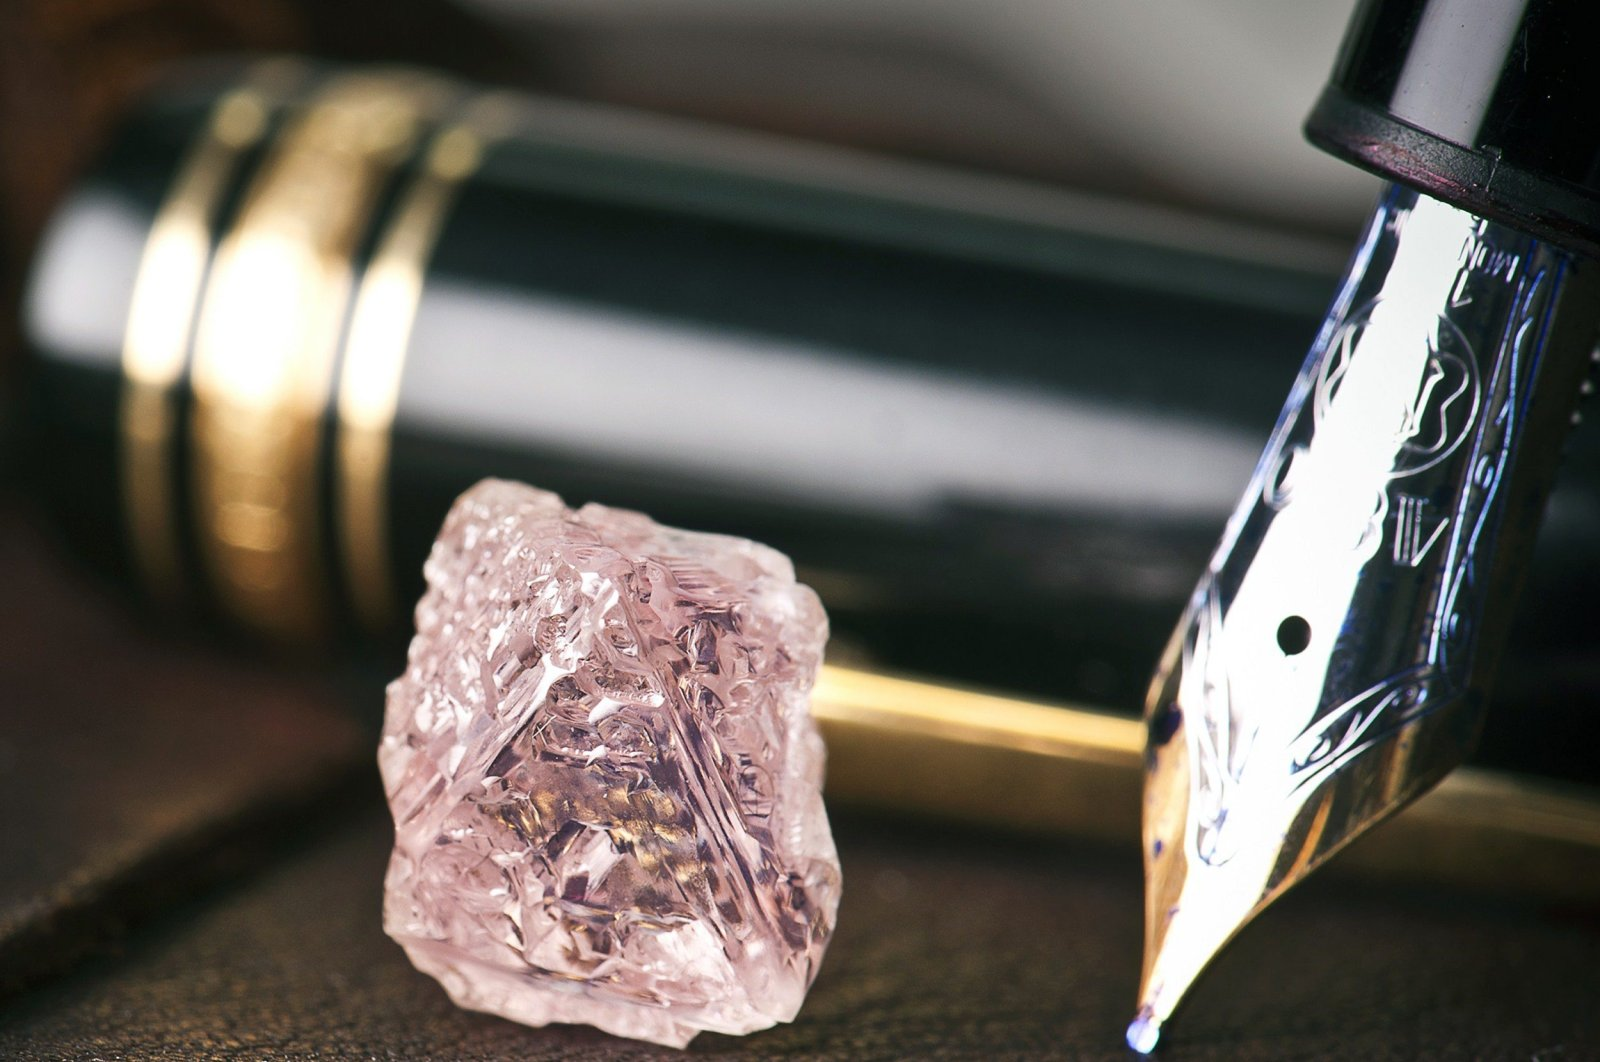 An undated handout photo released by mining giant Rio Tinto shows a 12.76 carat pink diamond – the largest of the rare and precious stones ever found in Australia on Feb. 22, 2012. (AFP Photo)